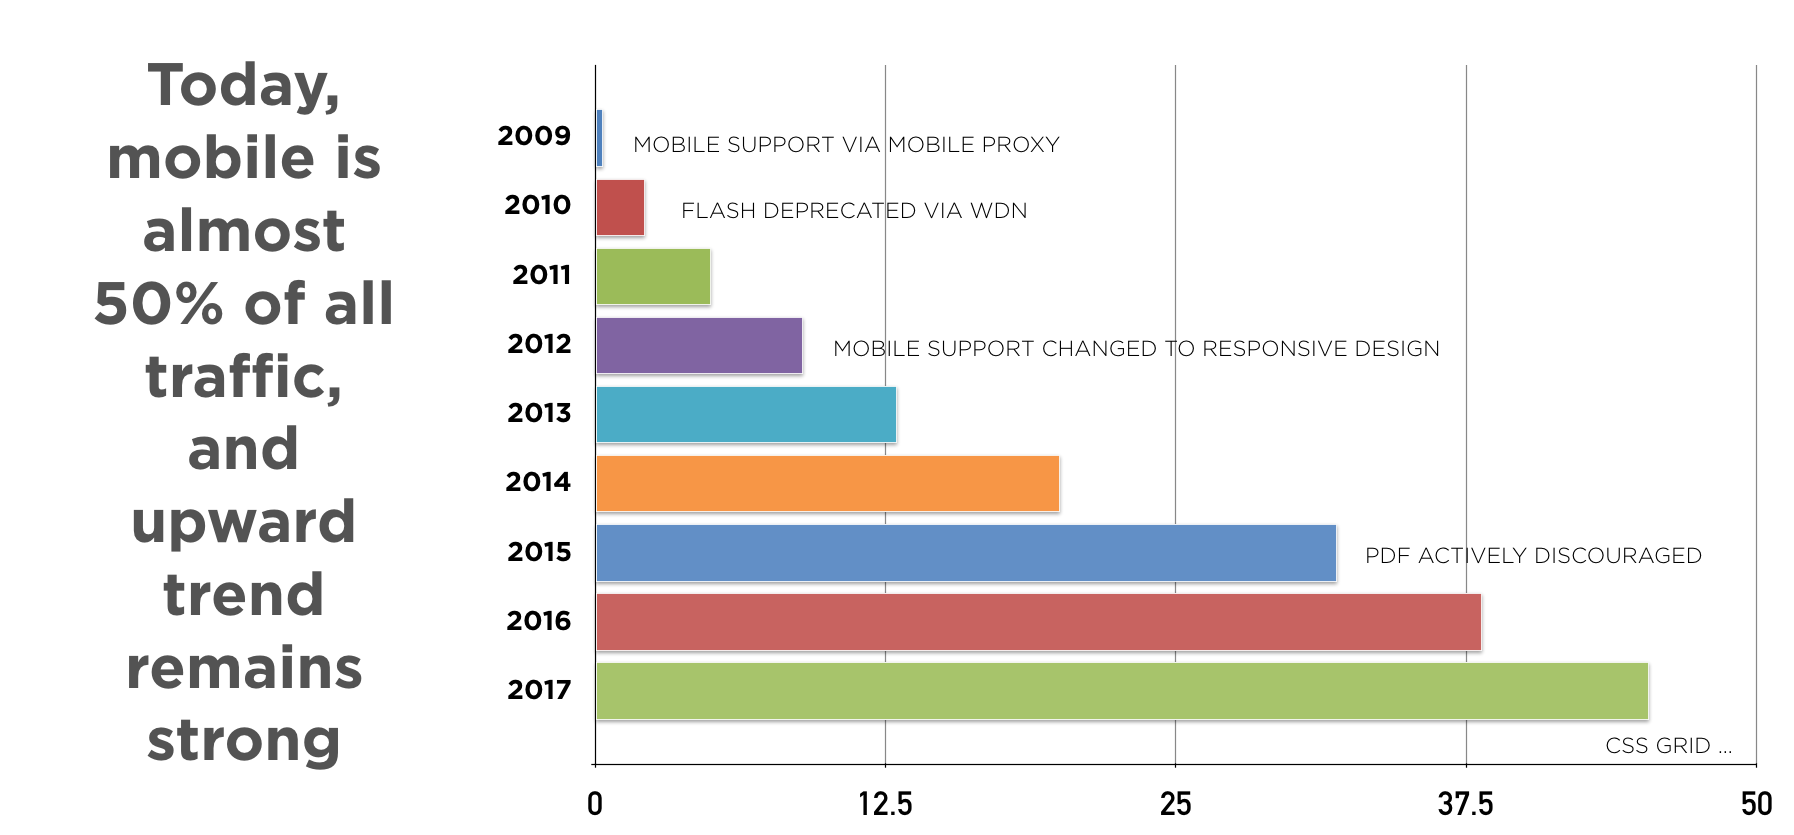 chart showing mobile share growth from very little in 2011 to around 50 percent in 2018